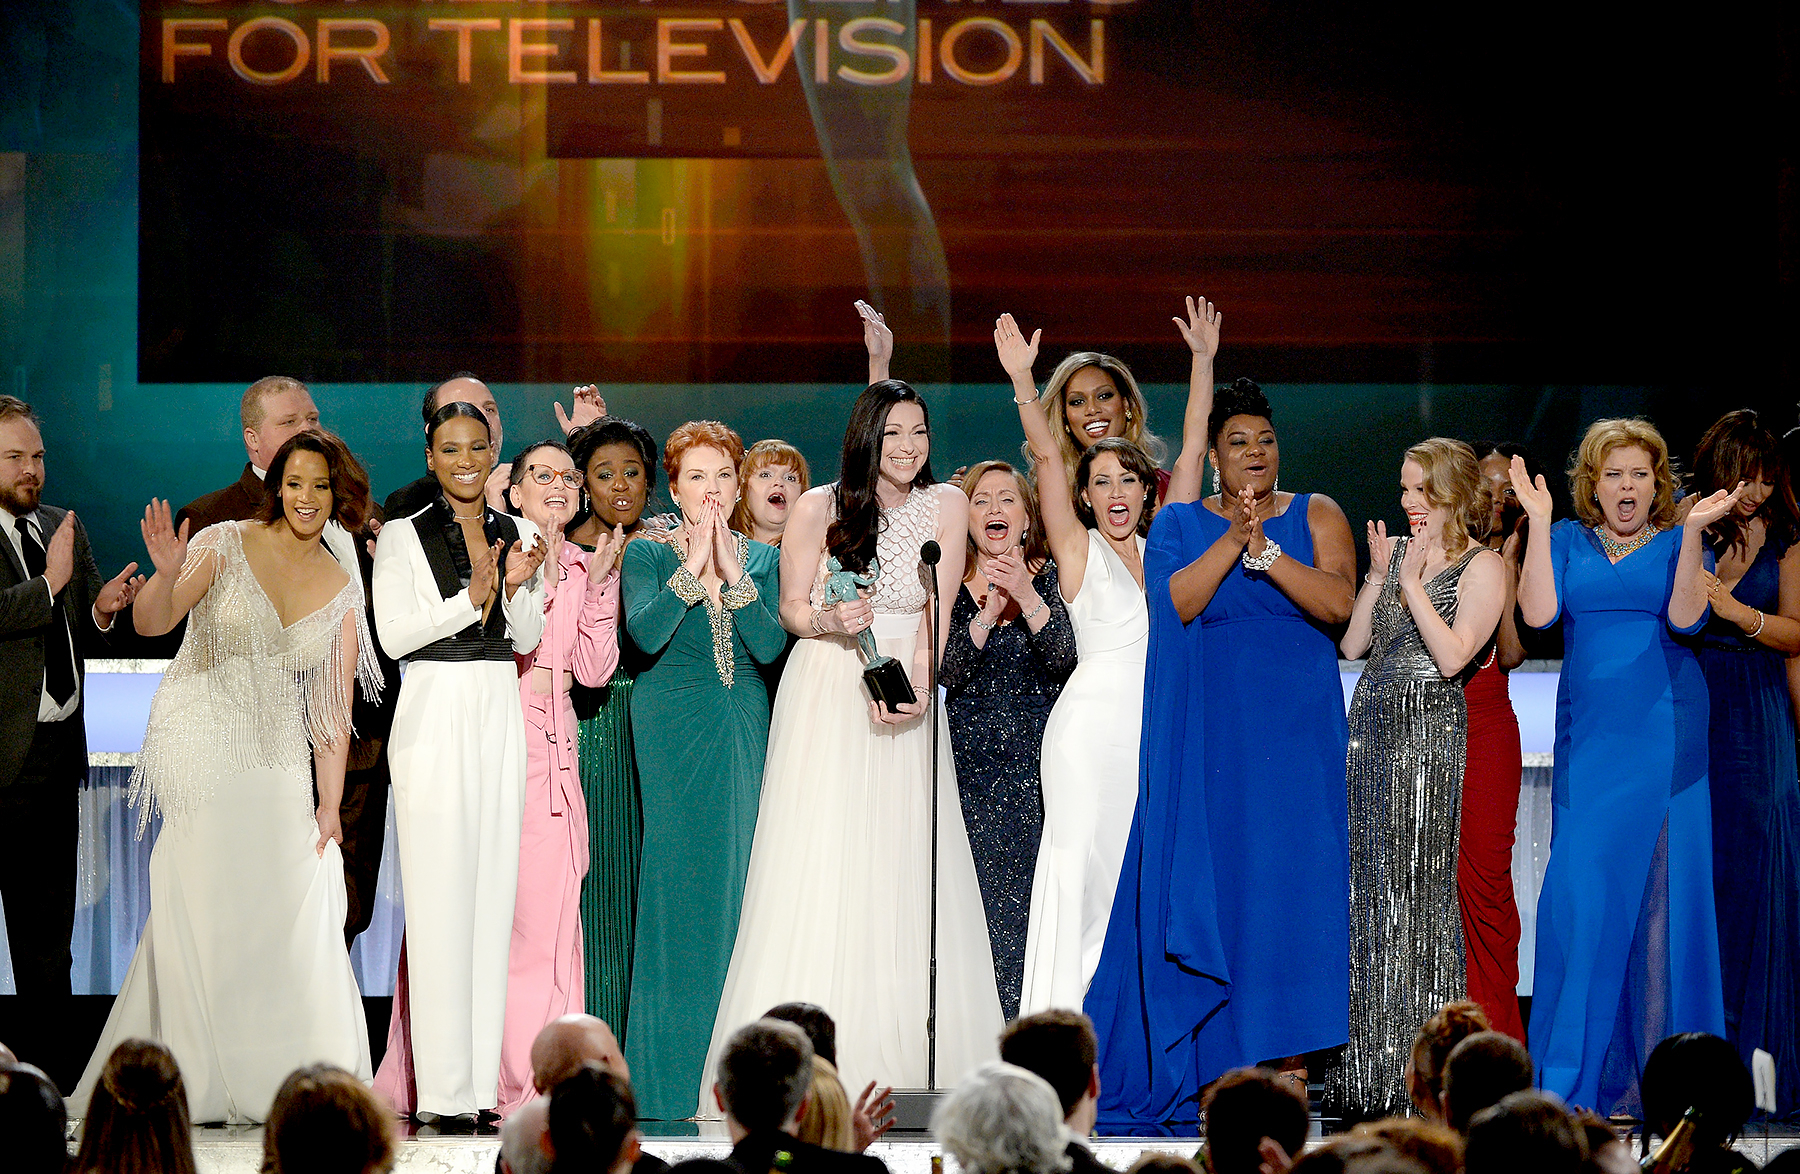 The cast of 'Orange Is the New Black,' including actors Vicky Jeudy, Lori Petty, Uzo Aduba, Kate Mulgrew, Annie Golden, Laura Prepon, Dale Soules, Laverne Cox, and Michelle Hurst, accept Outstanding Performance by an Ensemble in a Comedy Series award onstage during the 22nd Annual Screen Actors Guild Awards.